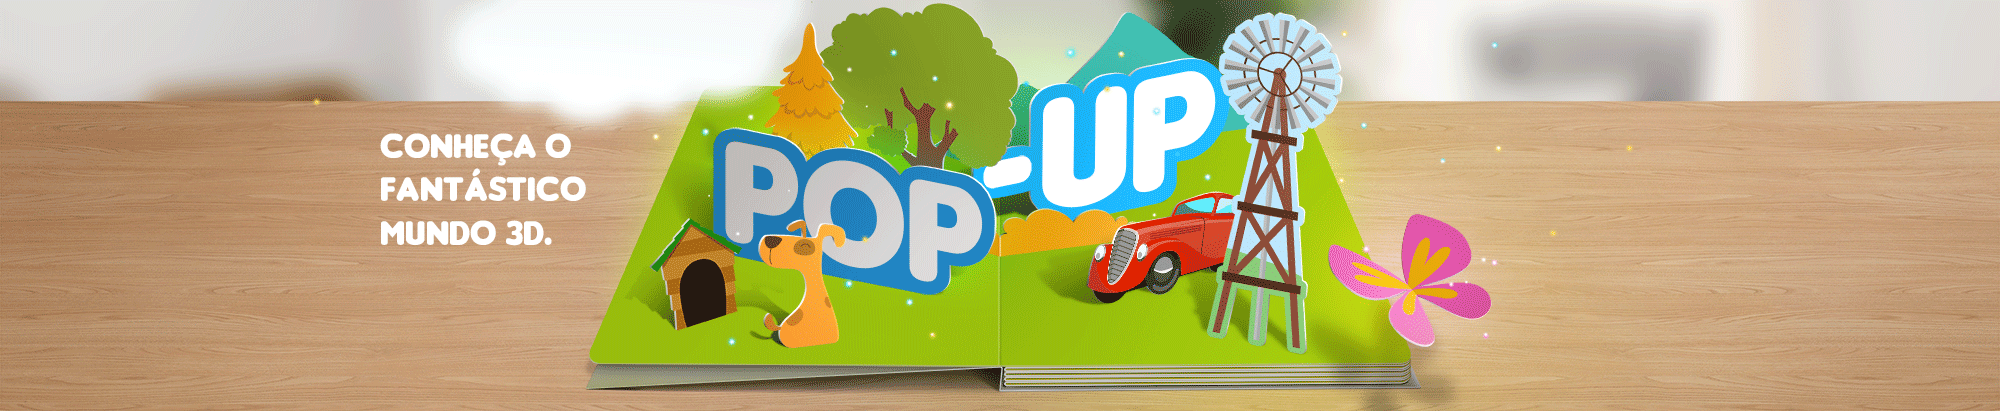 livro infantil 3d pop up